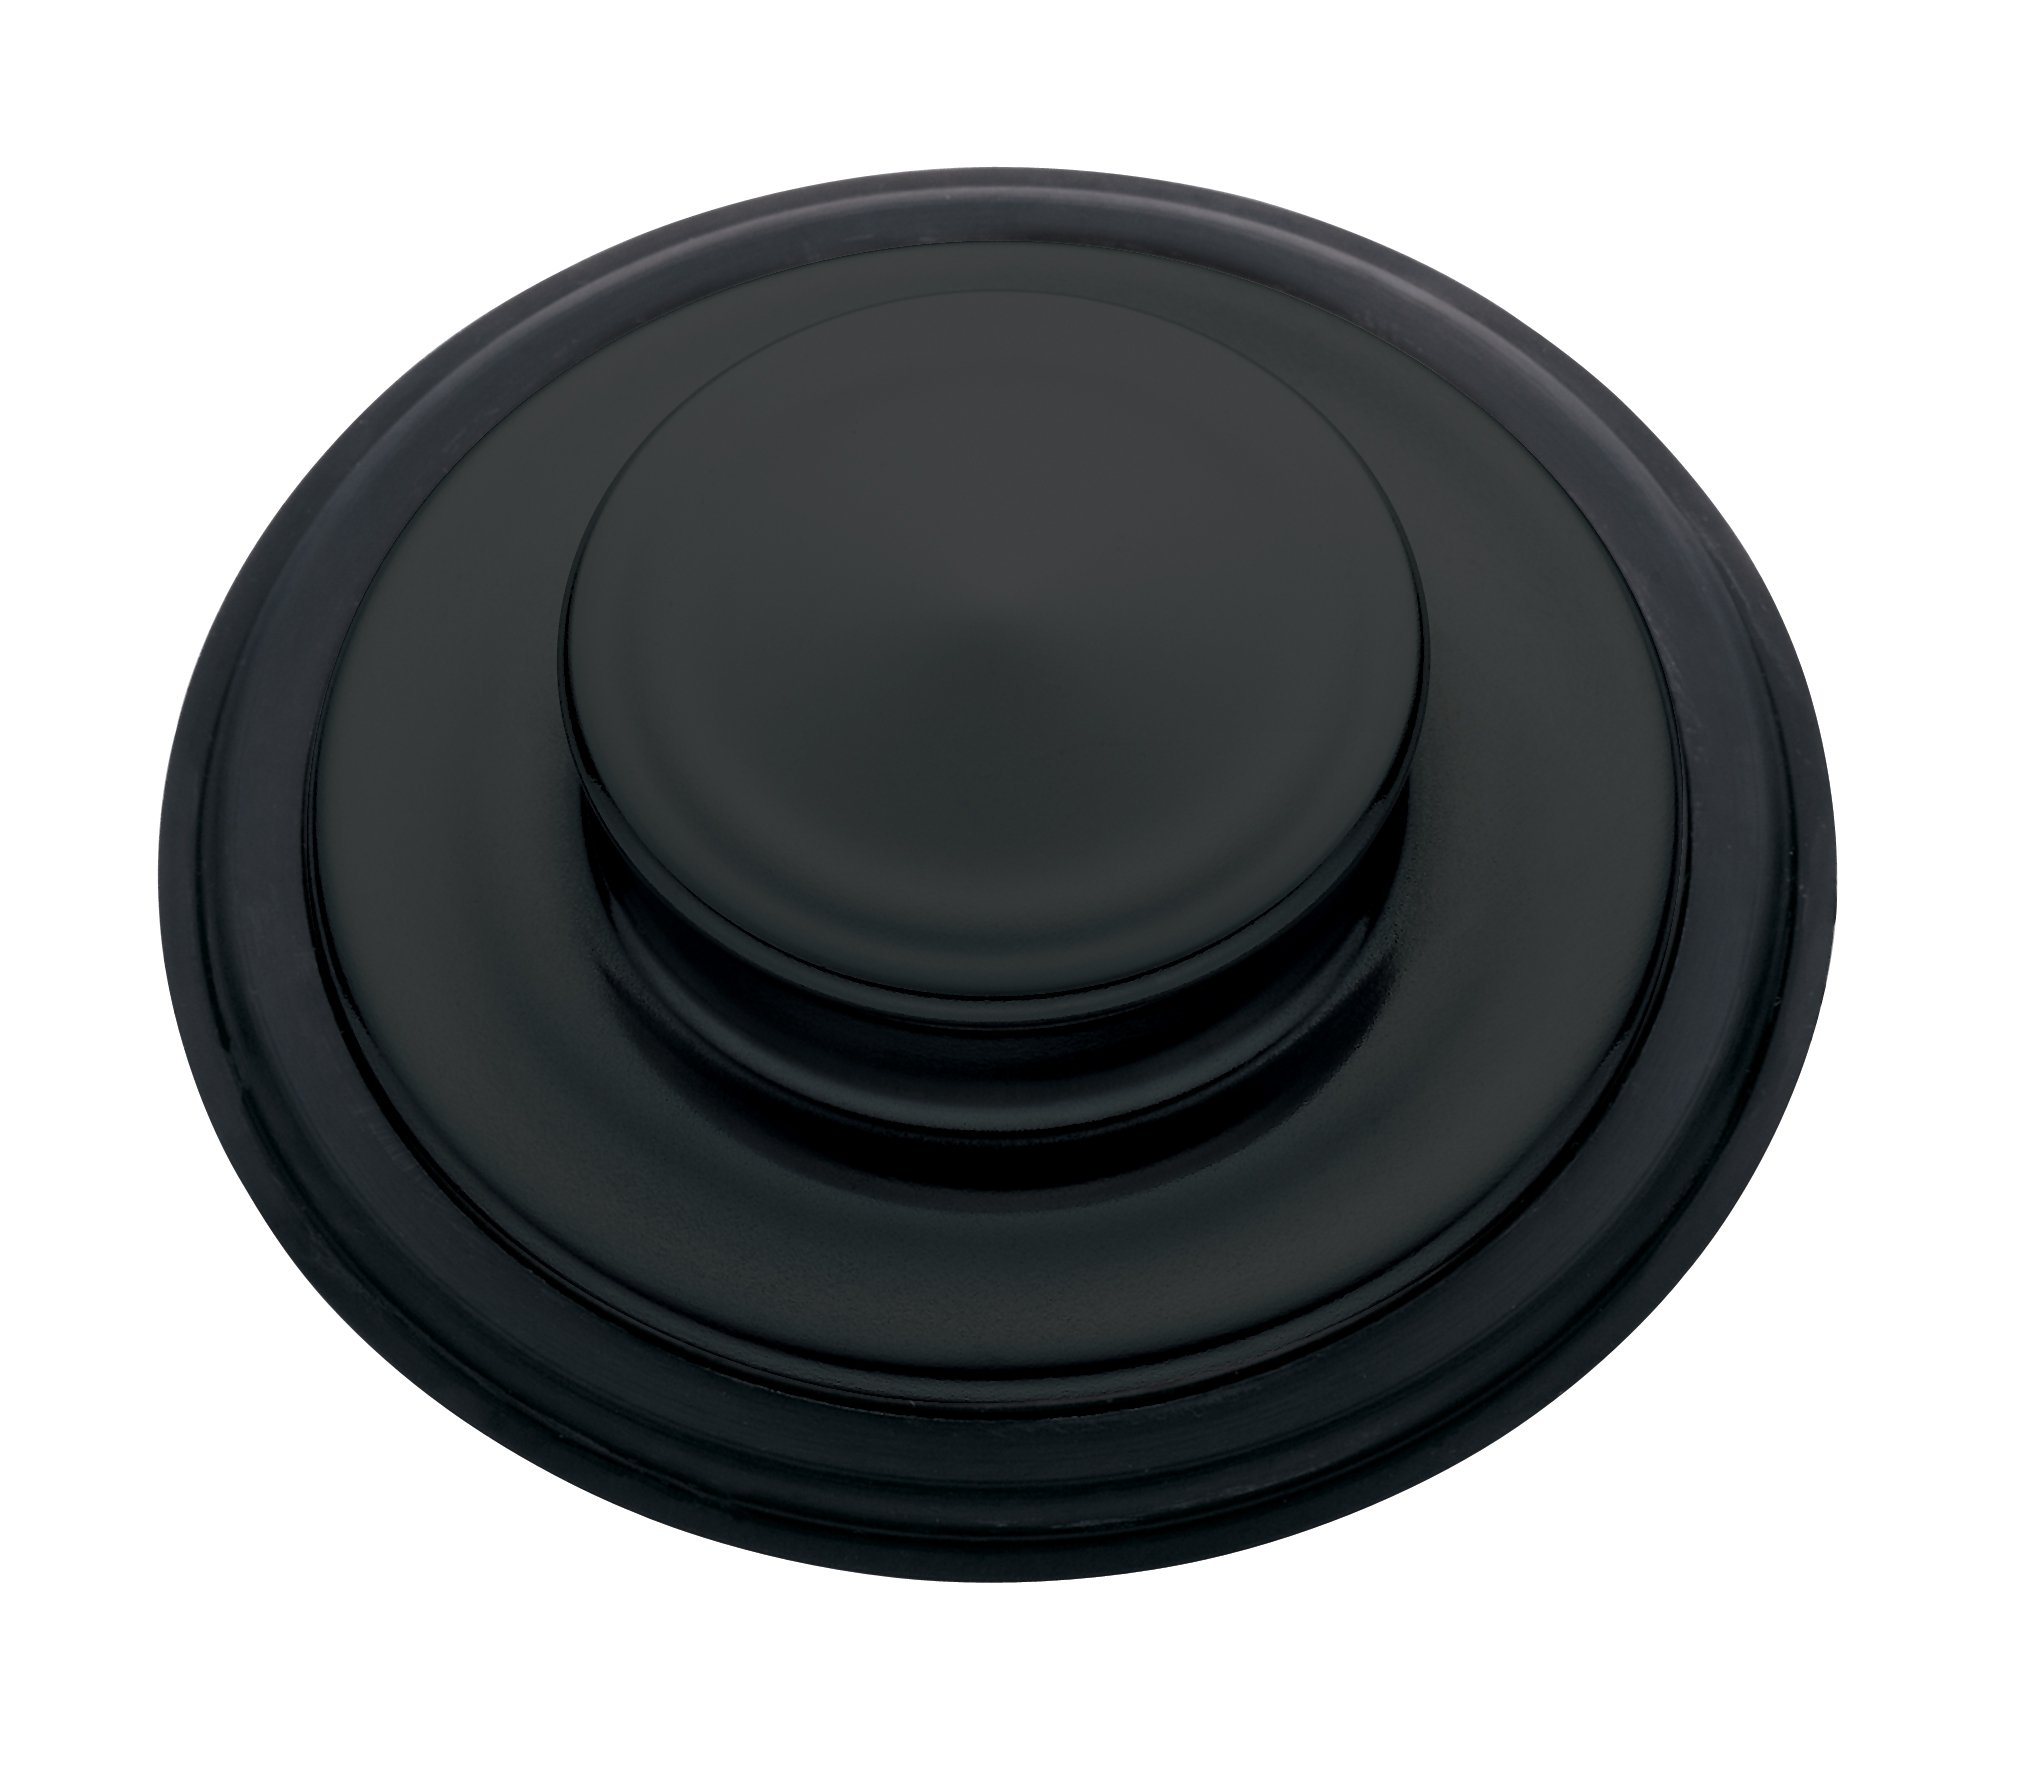 InSinkErator  STP-MTBLK Sink Stopper for Garbage Disposals, Matte Black by InSinkErator